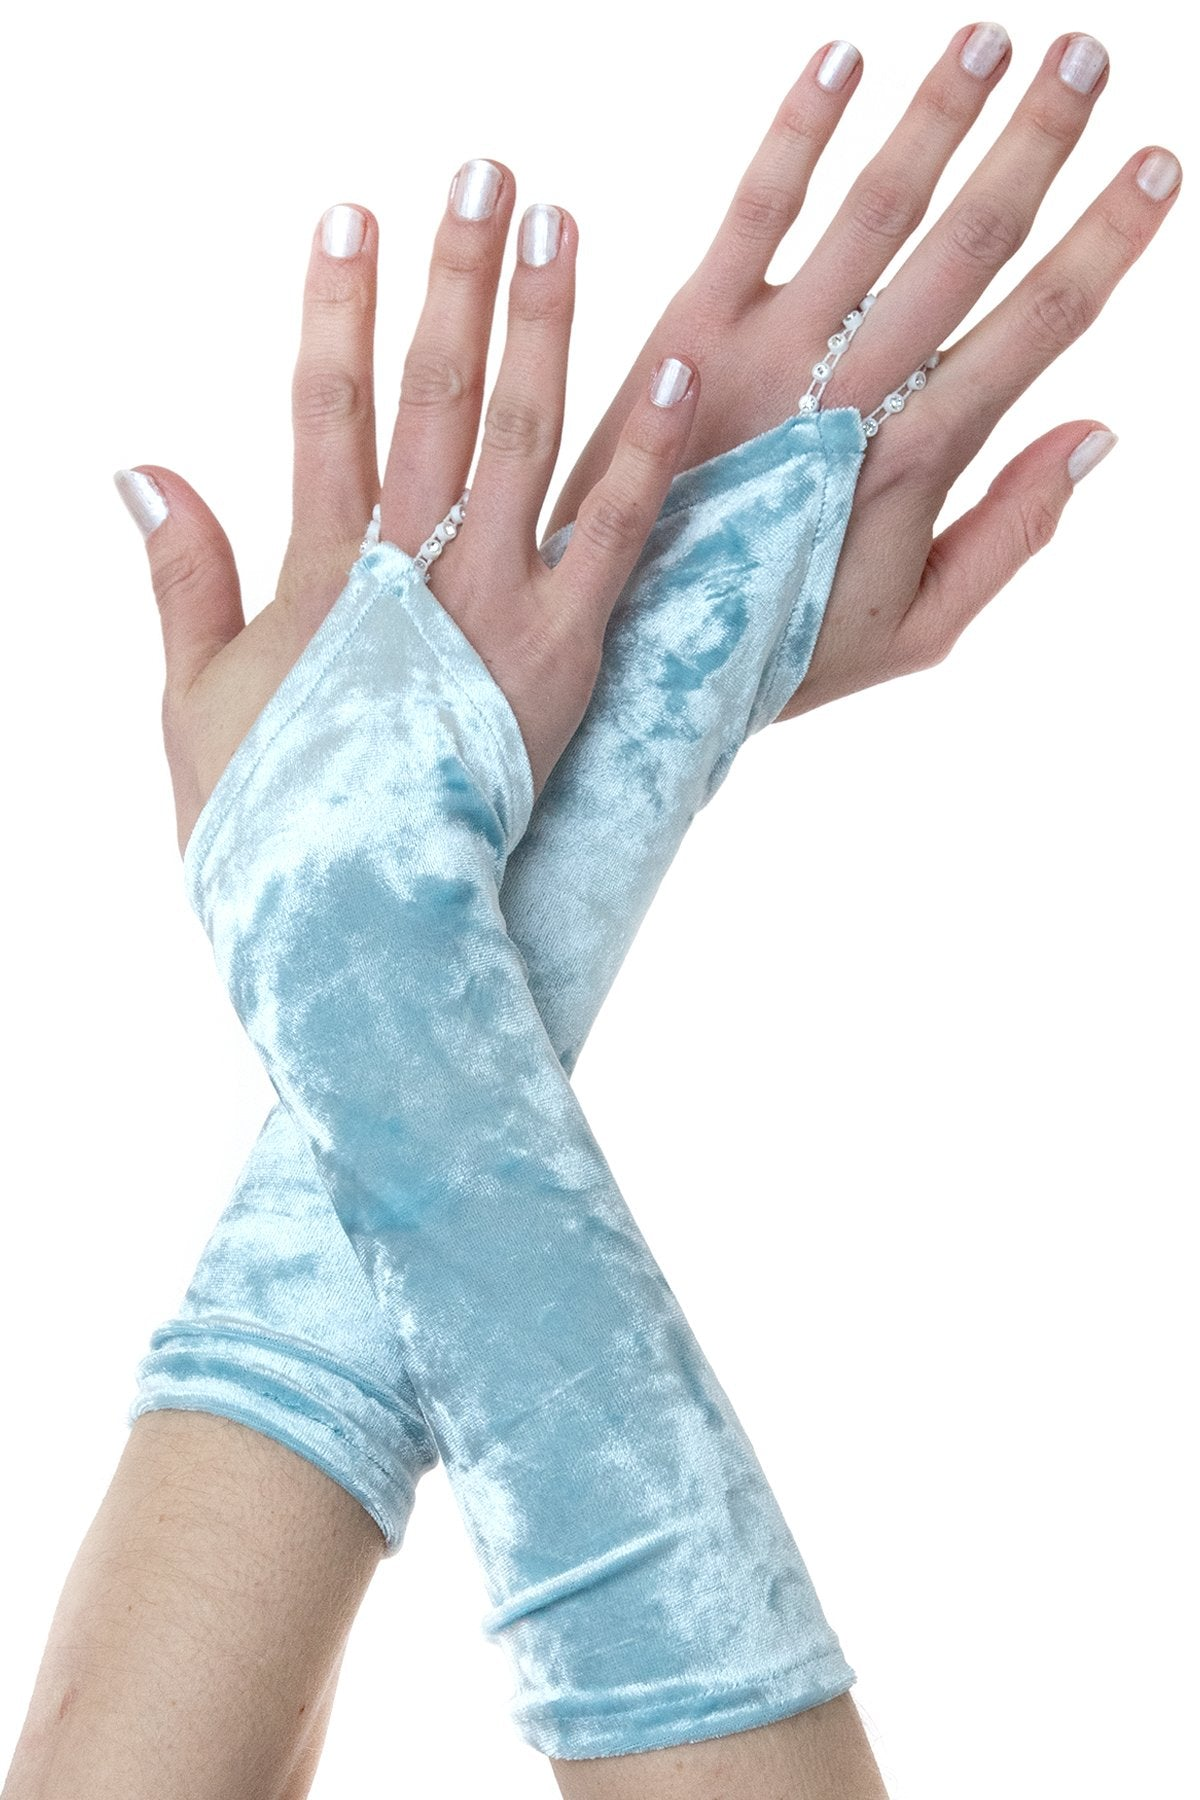 ☆Heavenly Glam Fingerless Glove☆